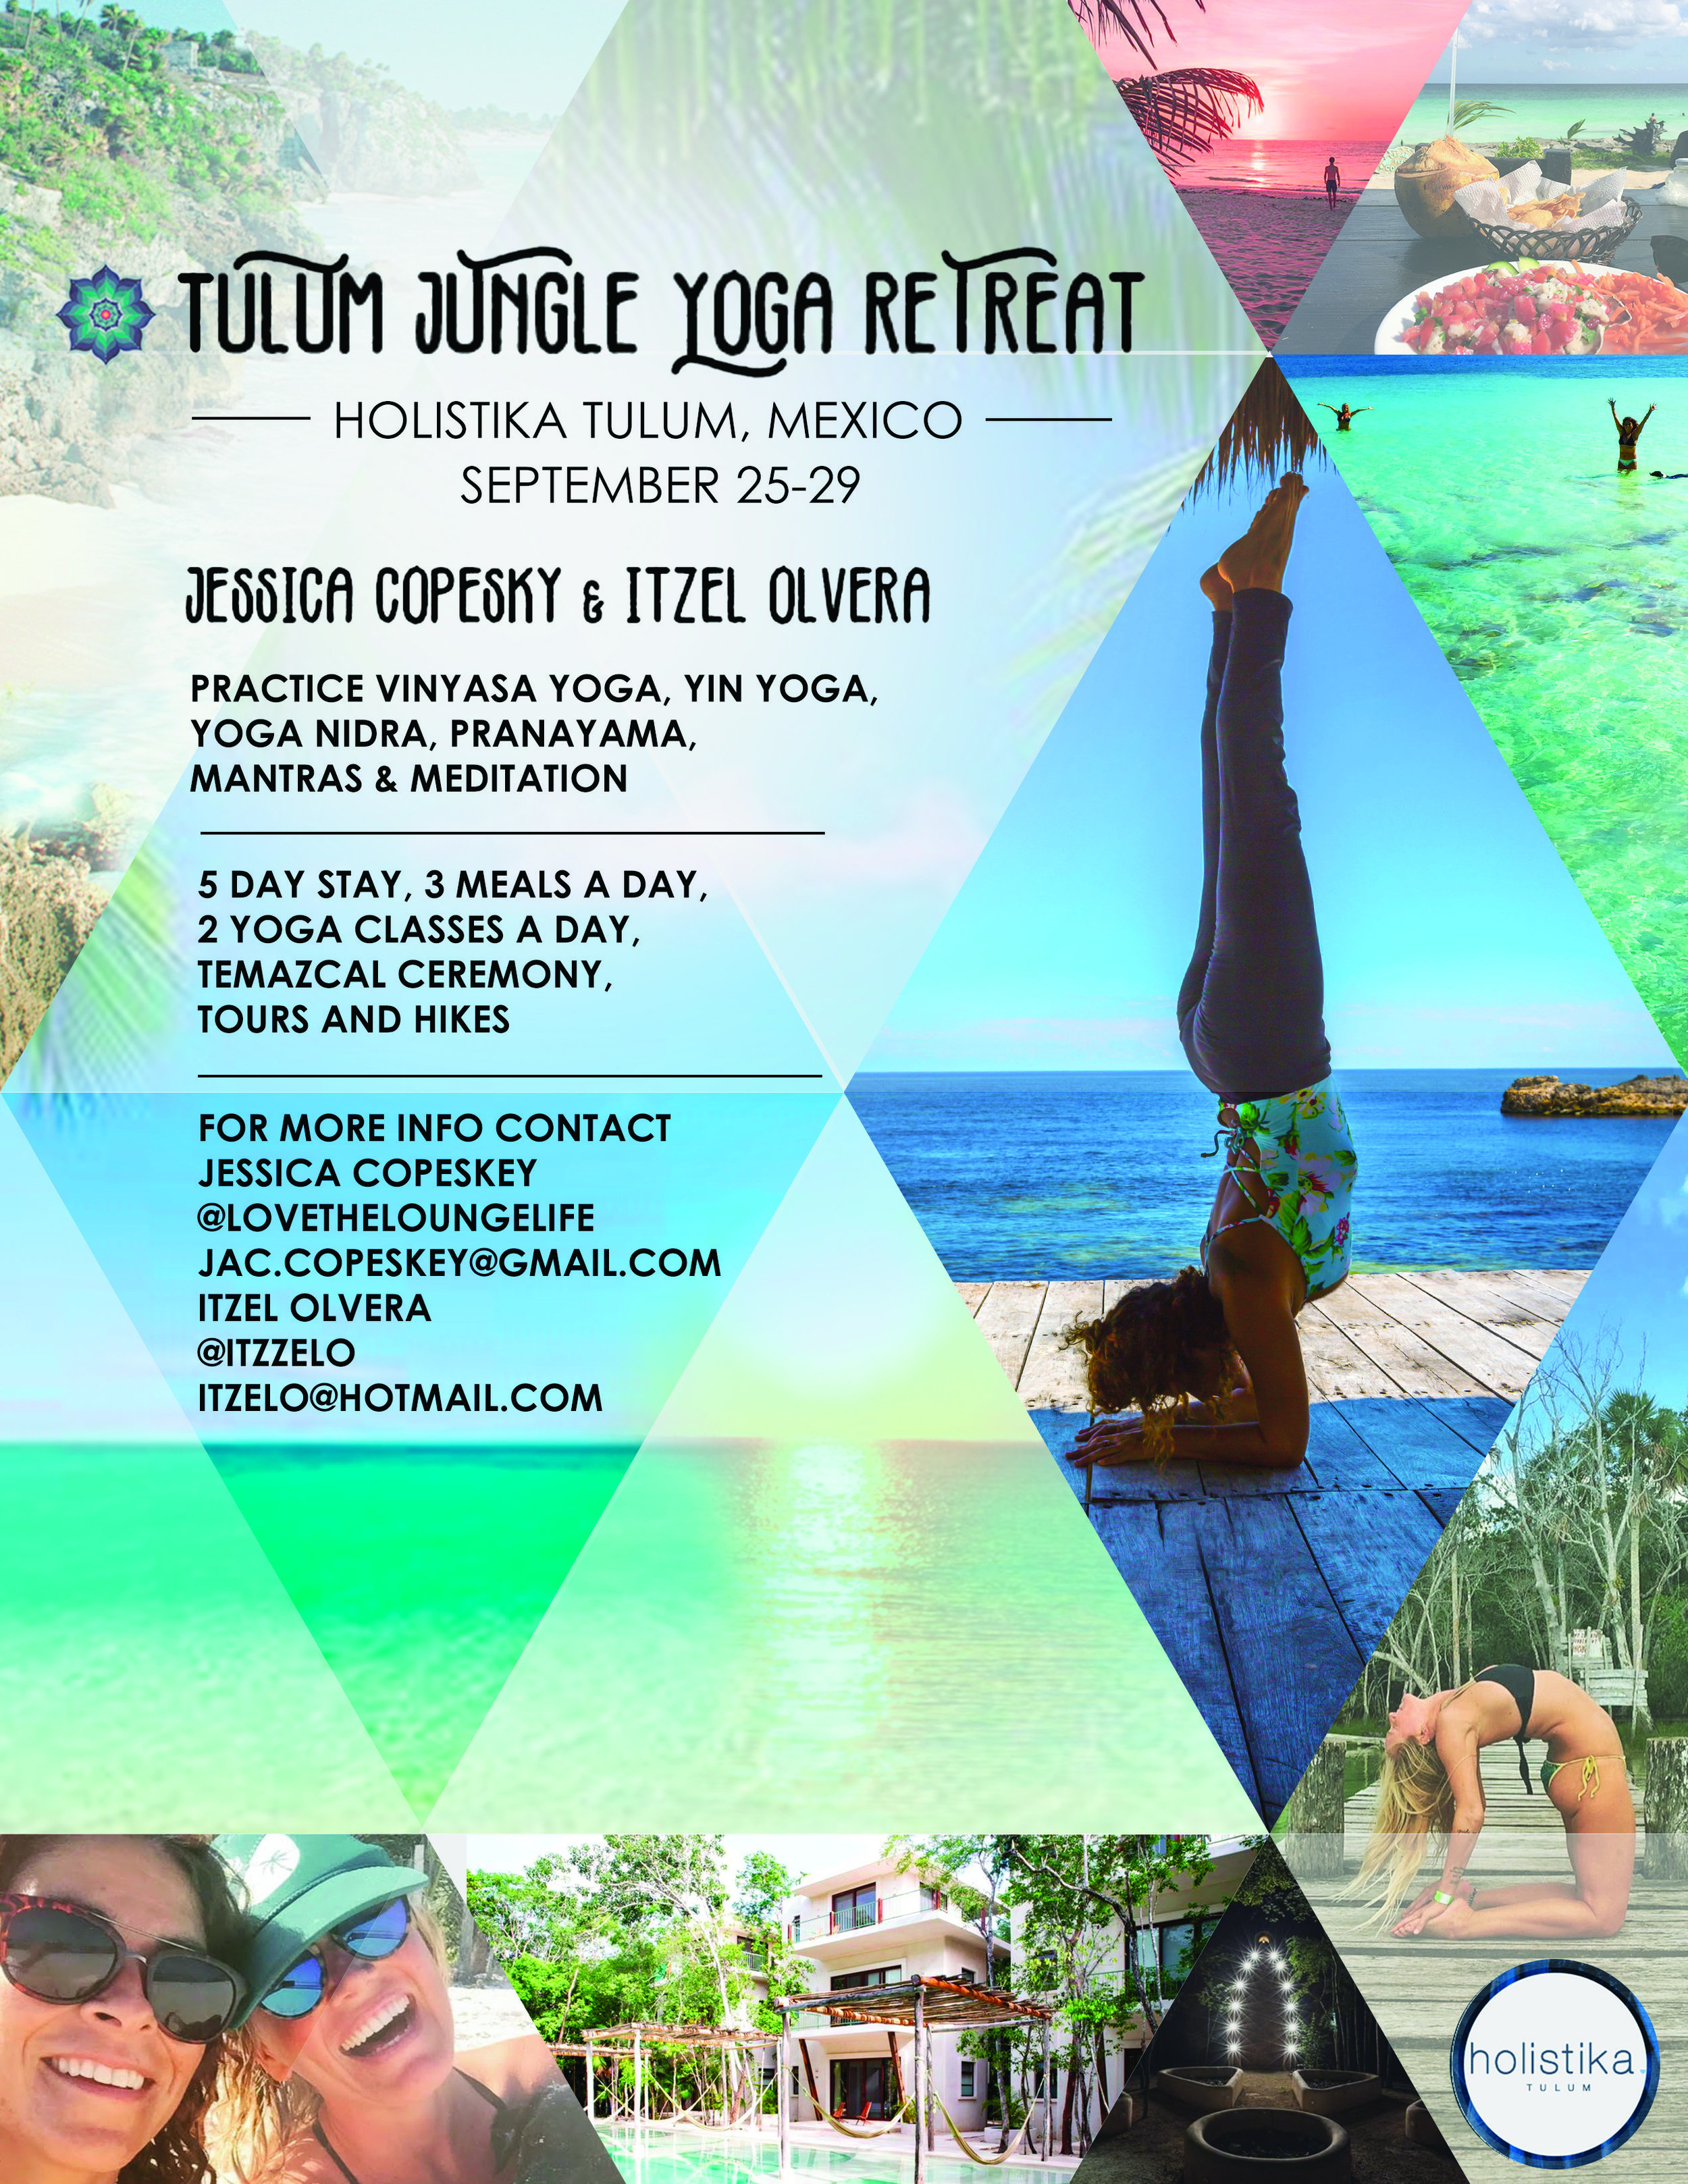 Tulum Jungle Yoga Retreat - september